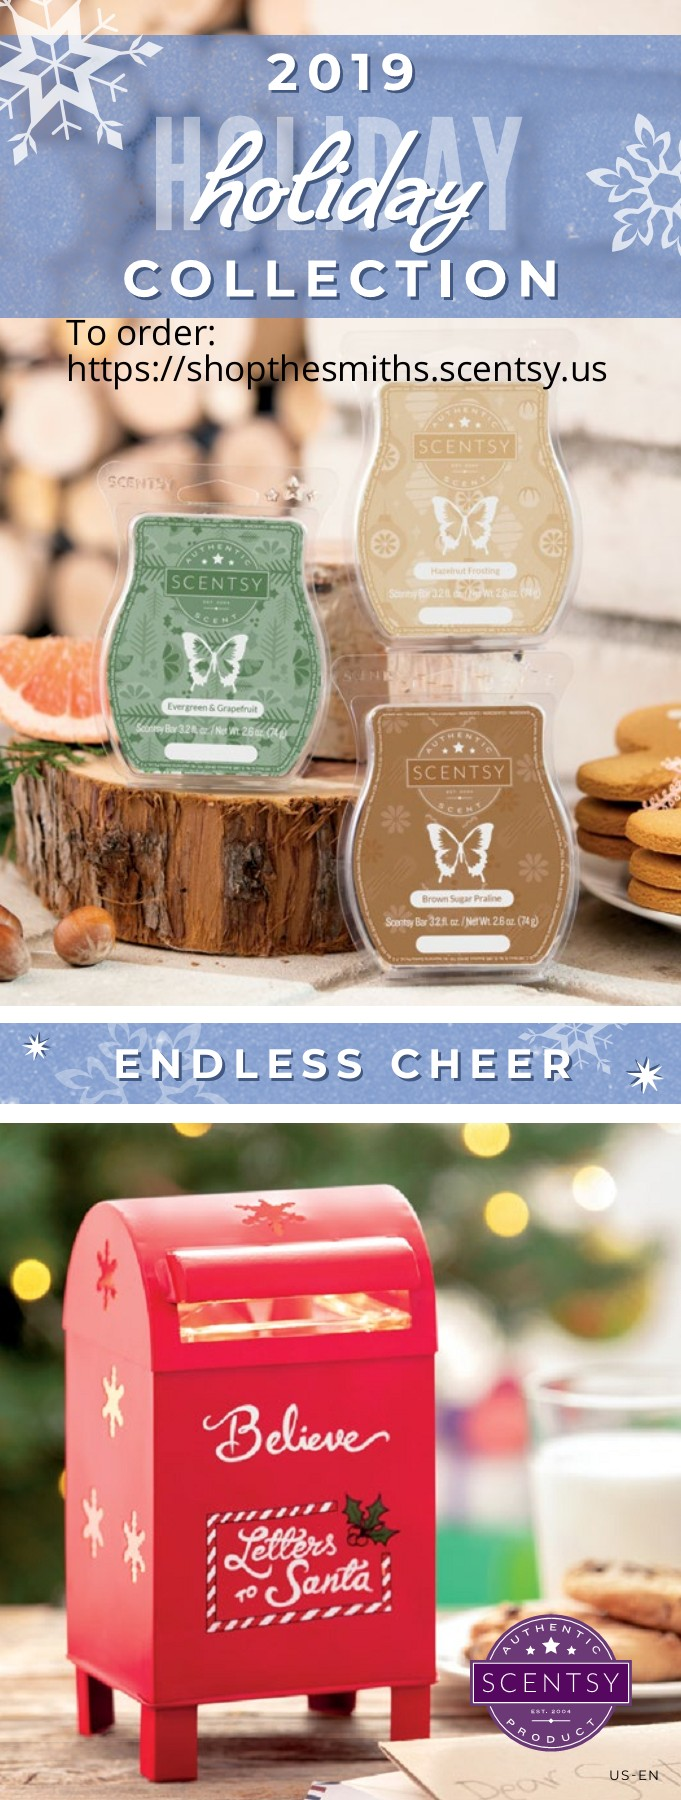 2019 Scentsy Holiday Brochure Flip Ebook Pages 1 12 Anyflip Anyflip